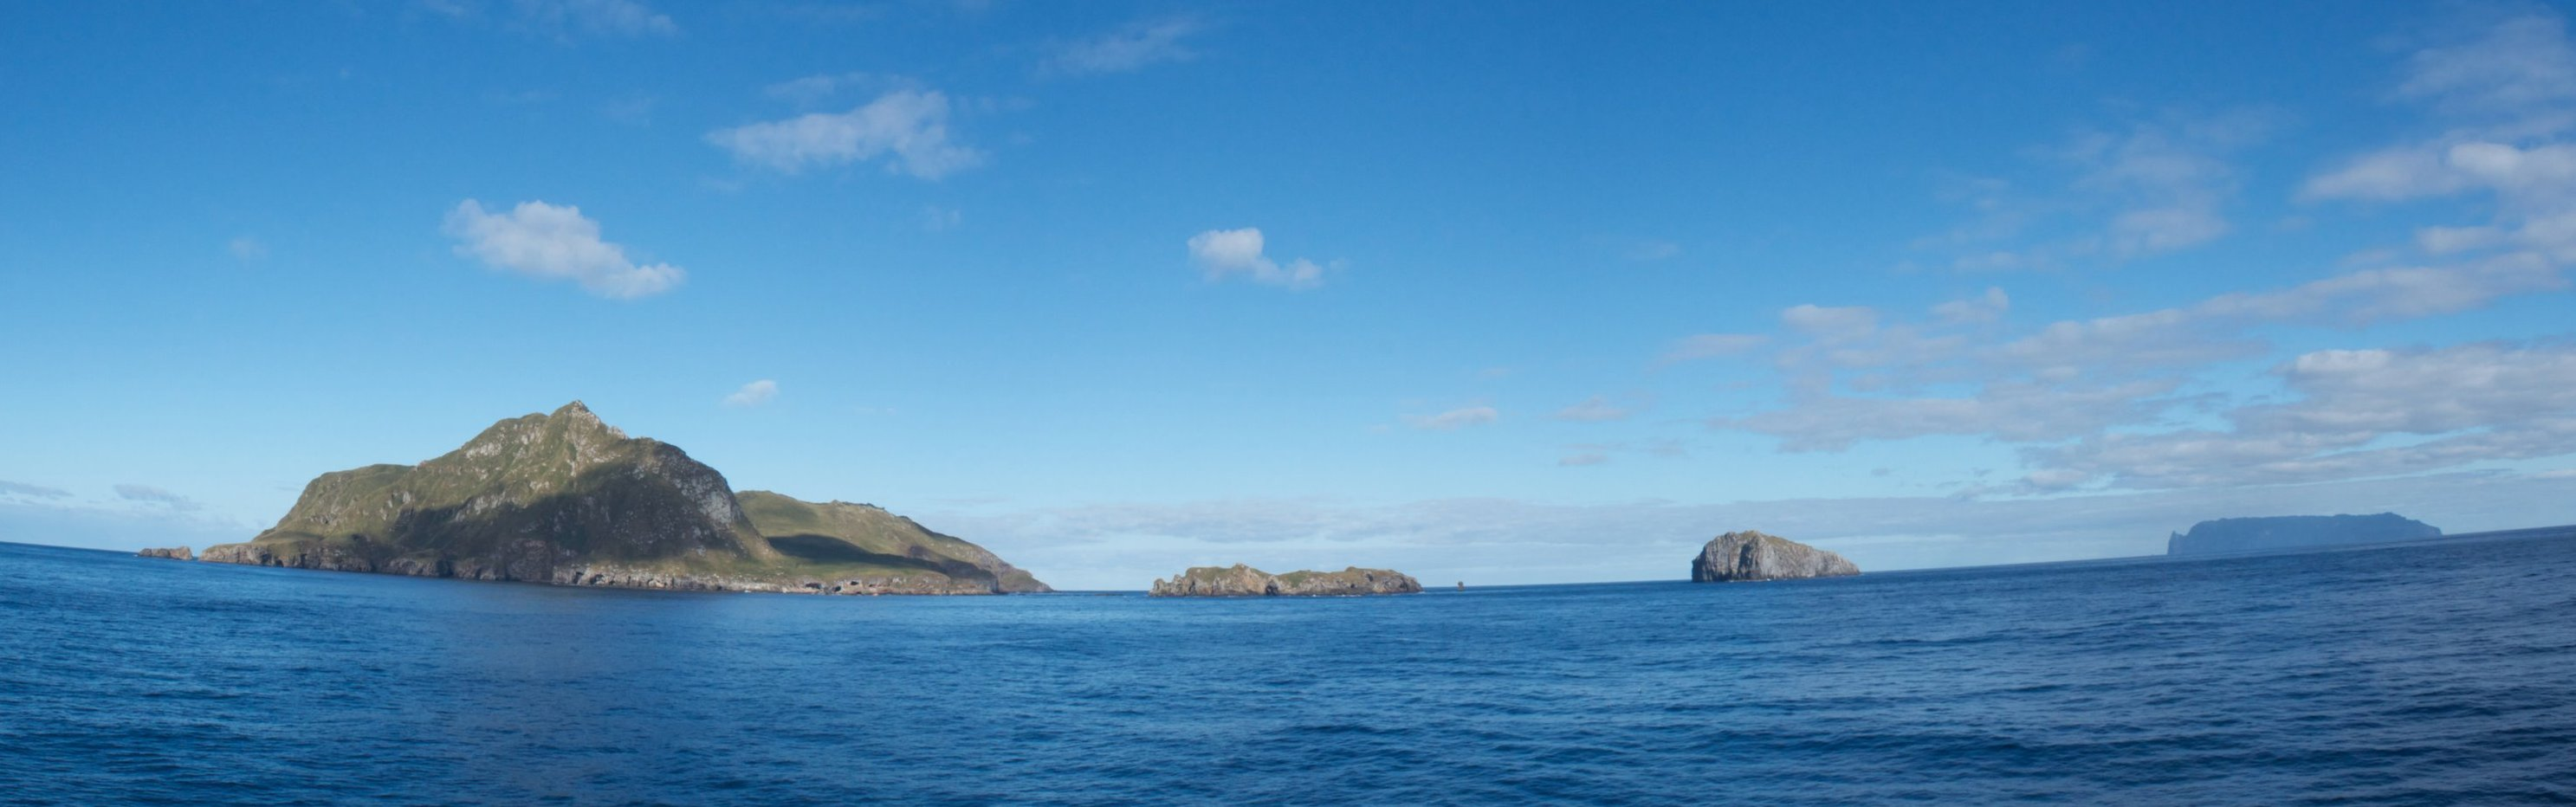 Panoramic views of Nightingale Islands, with the dark outline of Inaccessible Island in the distance